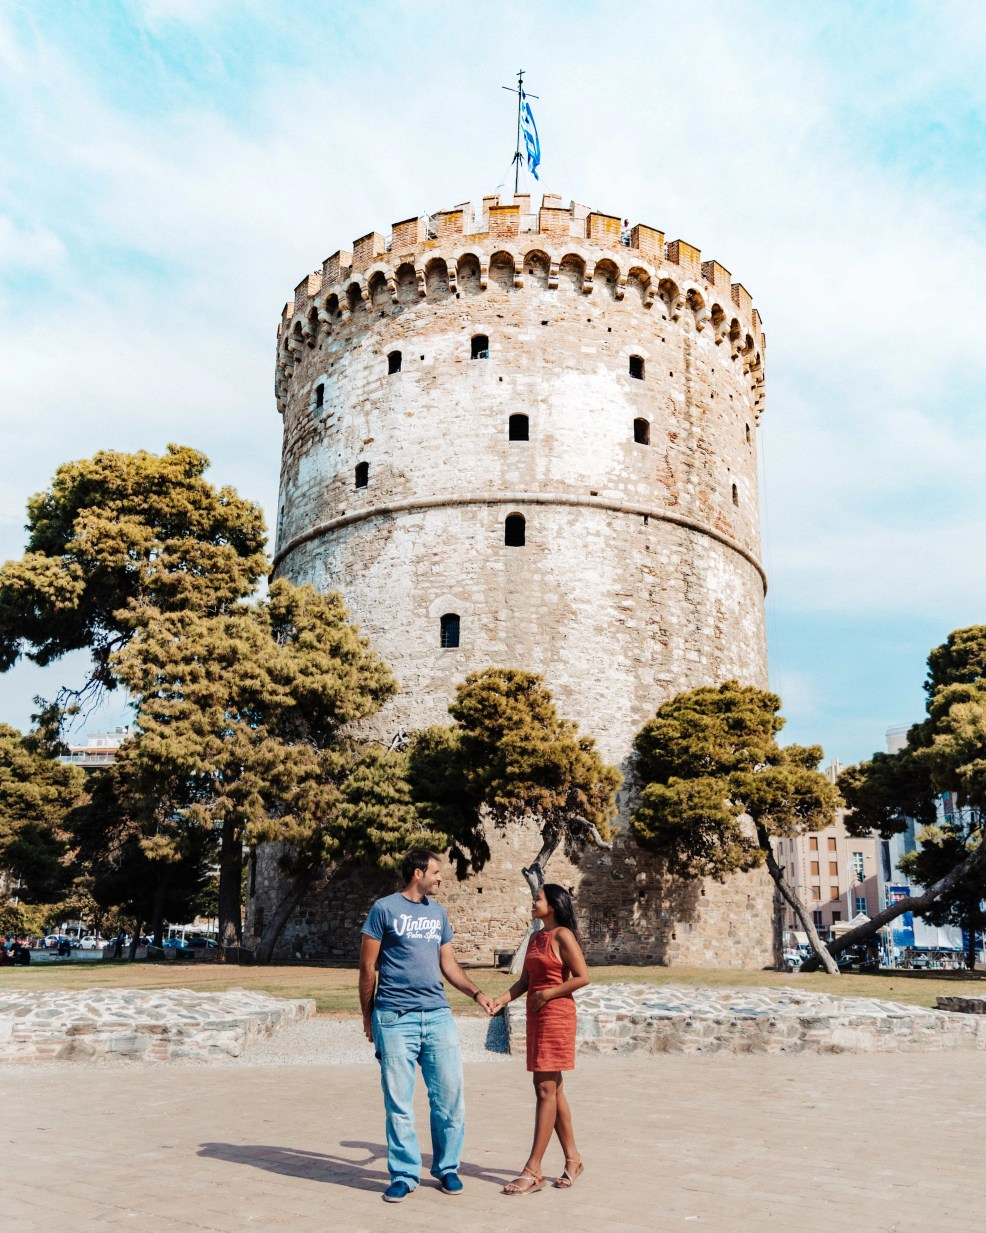 things to do in Thessaloniki, food to try in Thessaloniki, best time to visit thessaloniki, how to get to thessaloniki from the airport, how to get to thessaloniki, white tower